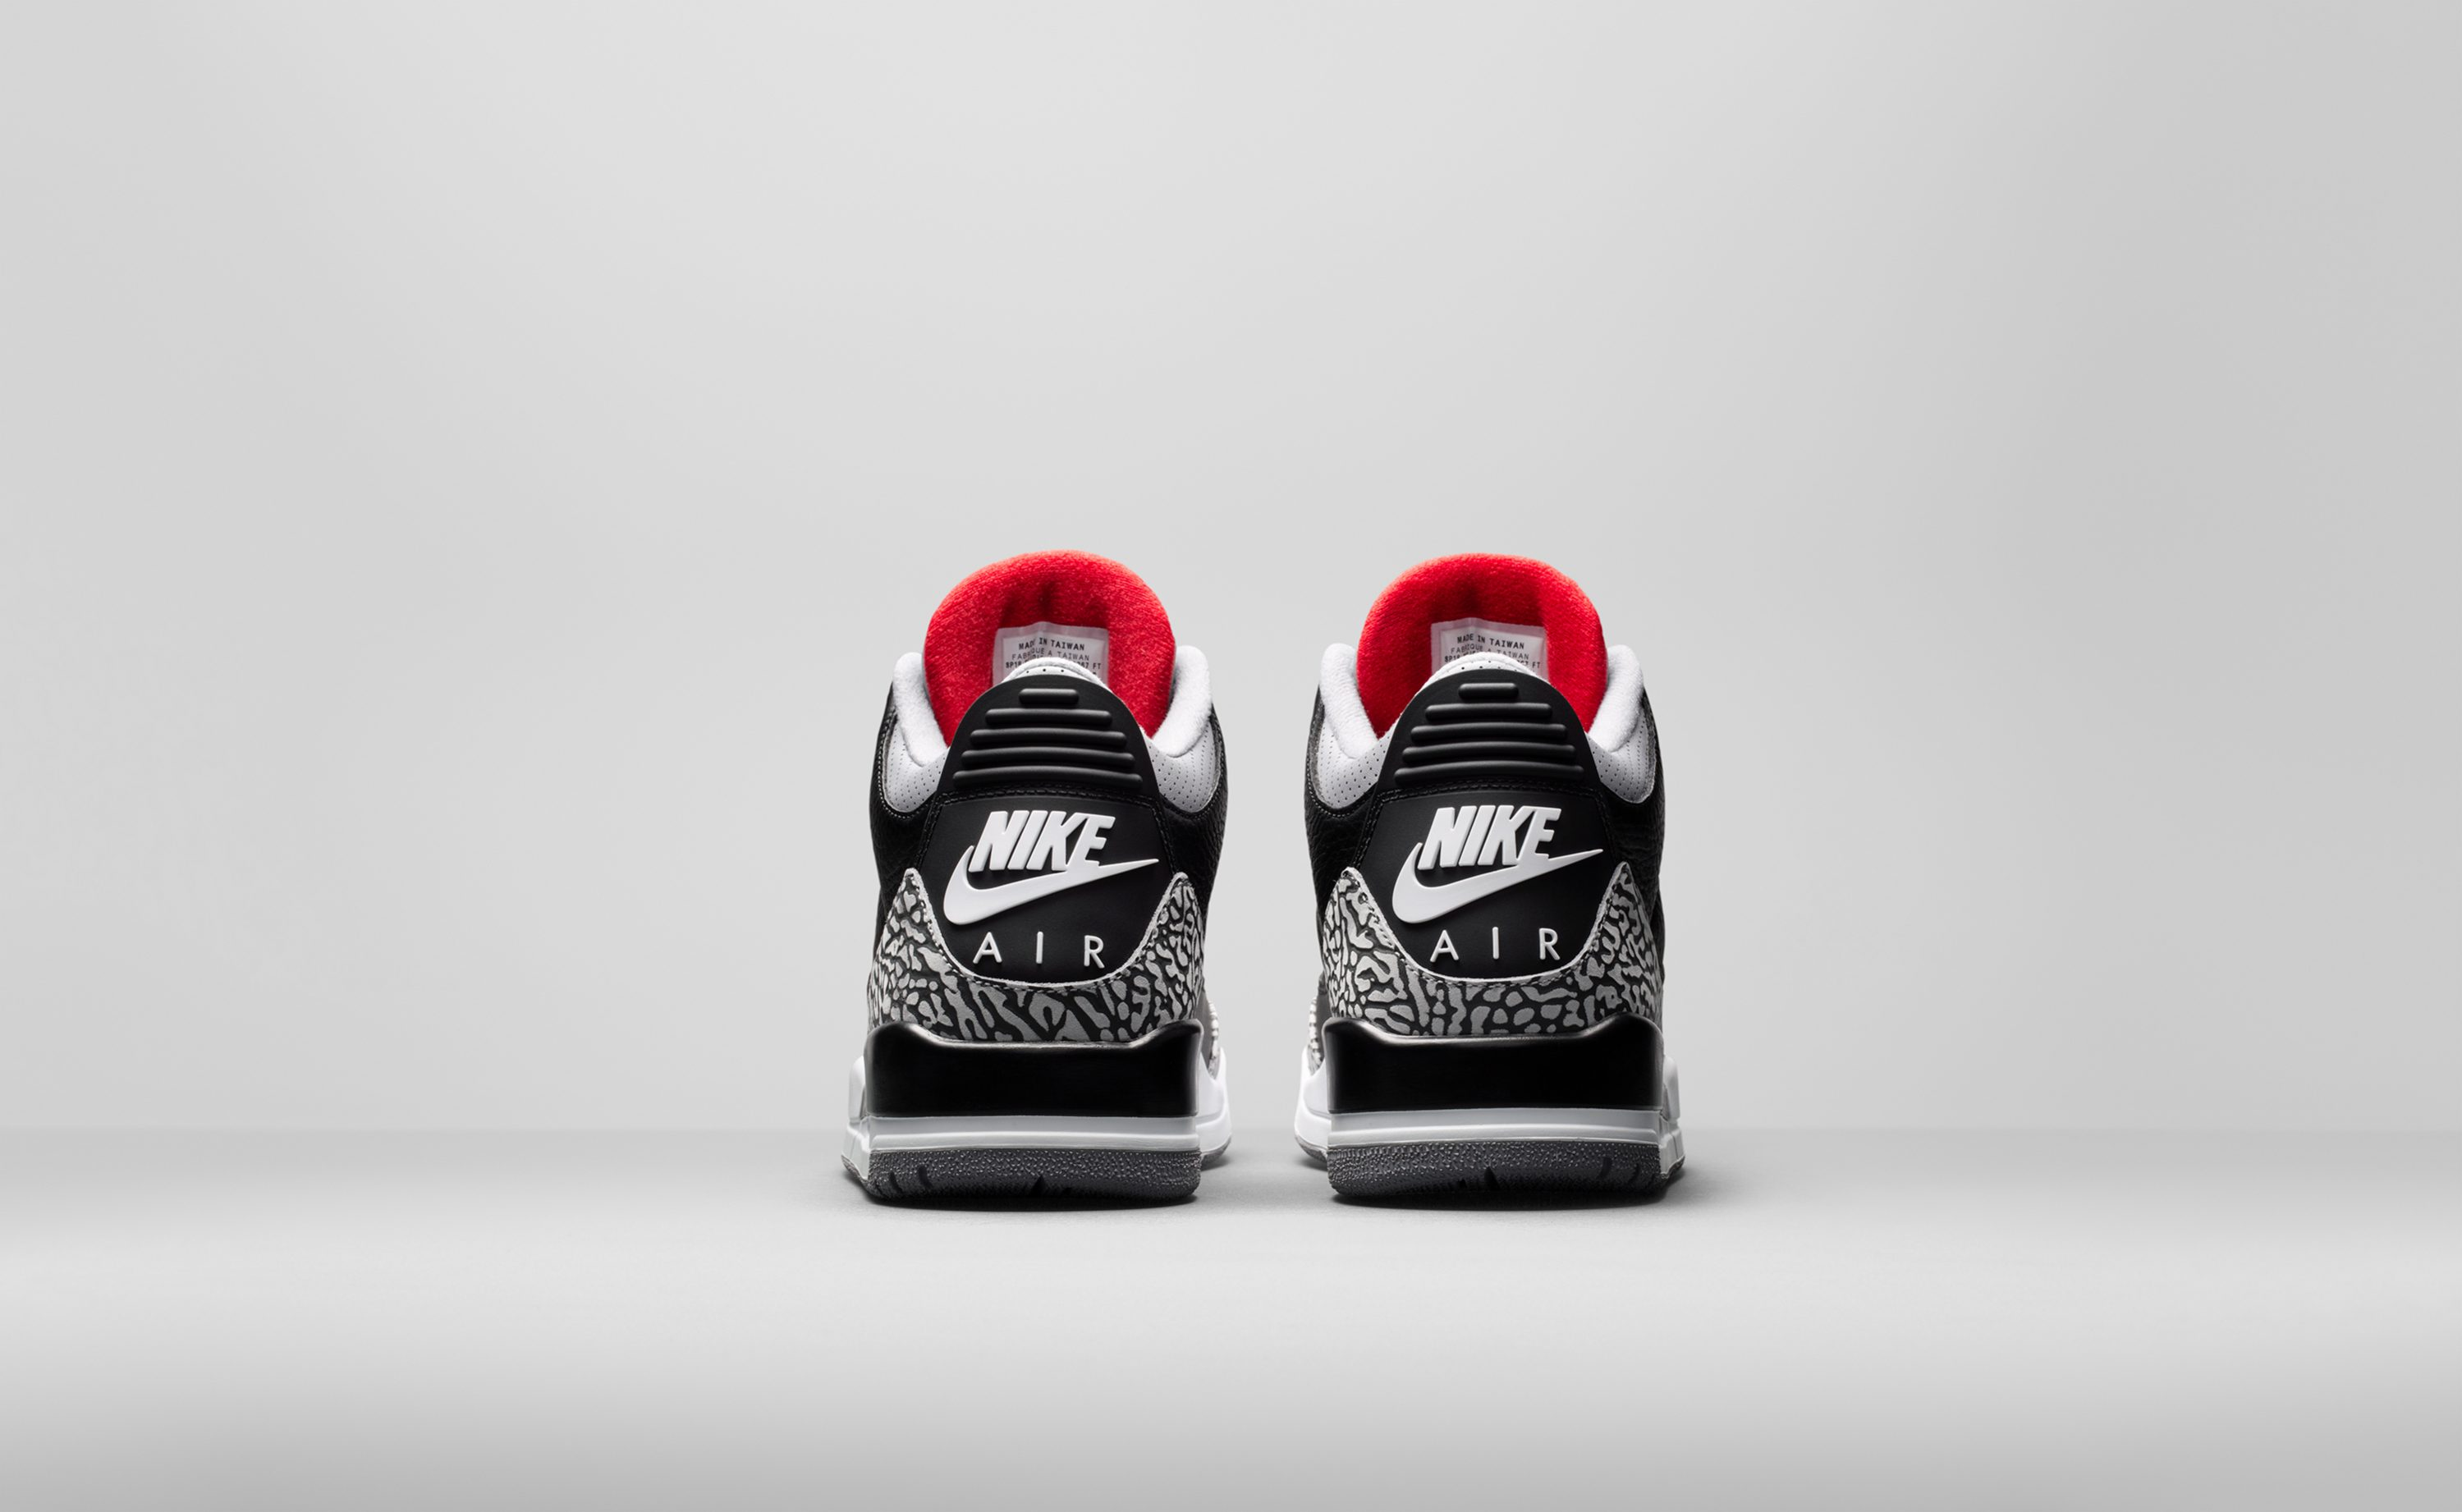 In arrivo le Air Jordan III BLACK CEMENT | Collater.al